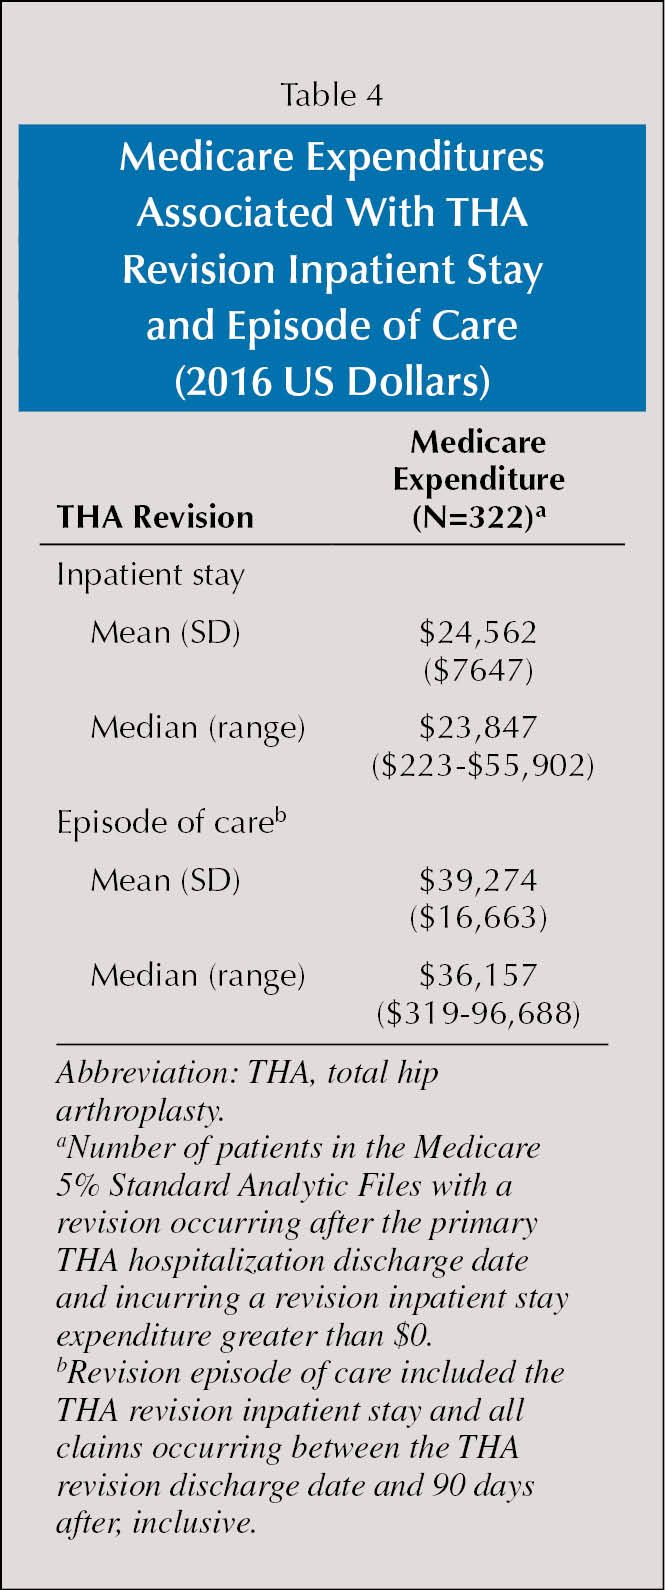 Medicare Expenditures Associated With THA Revision Inpatient Stay and Episode of Care (2016 US Dollars)